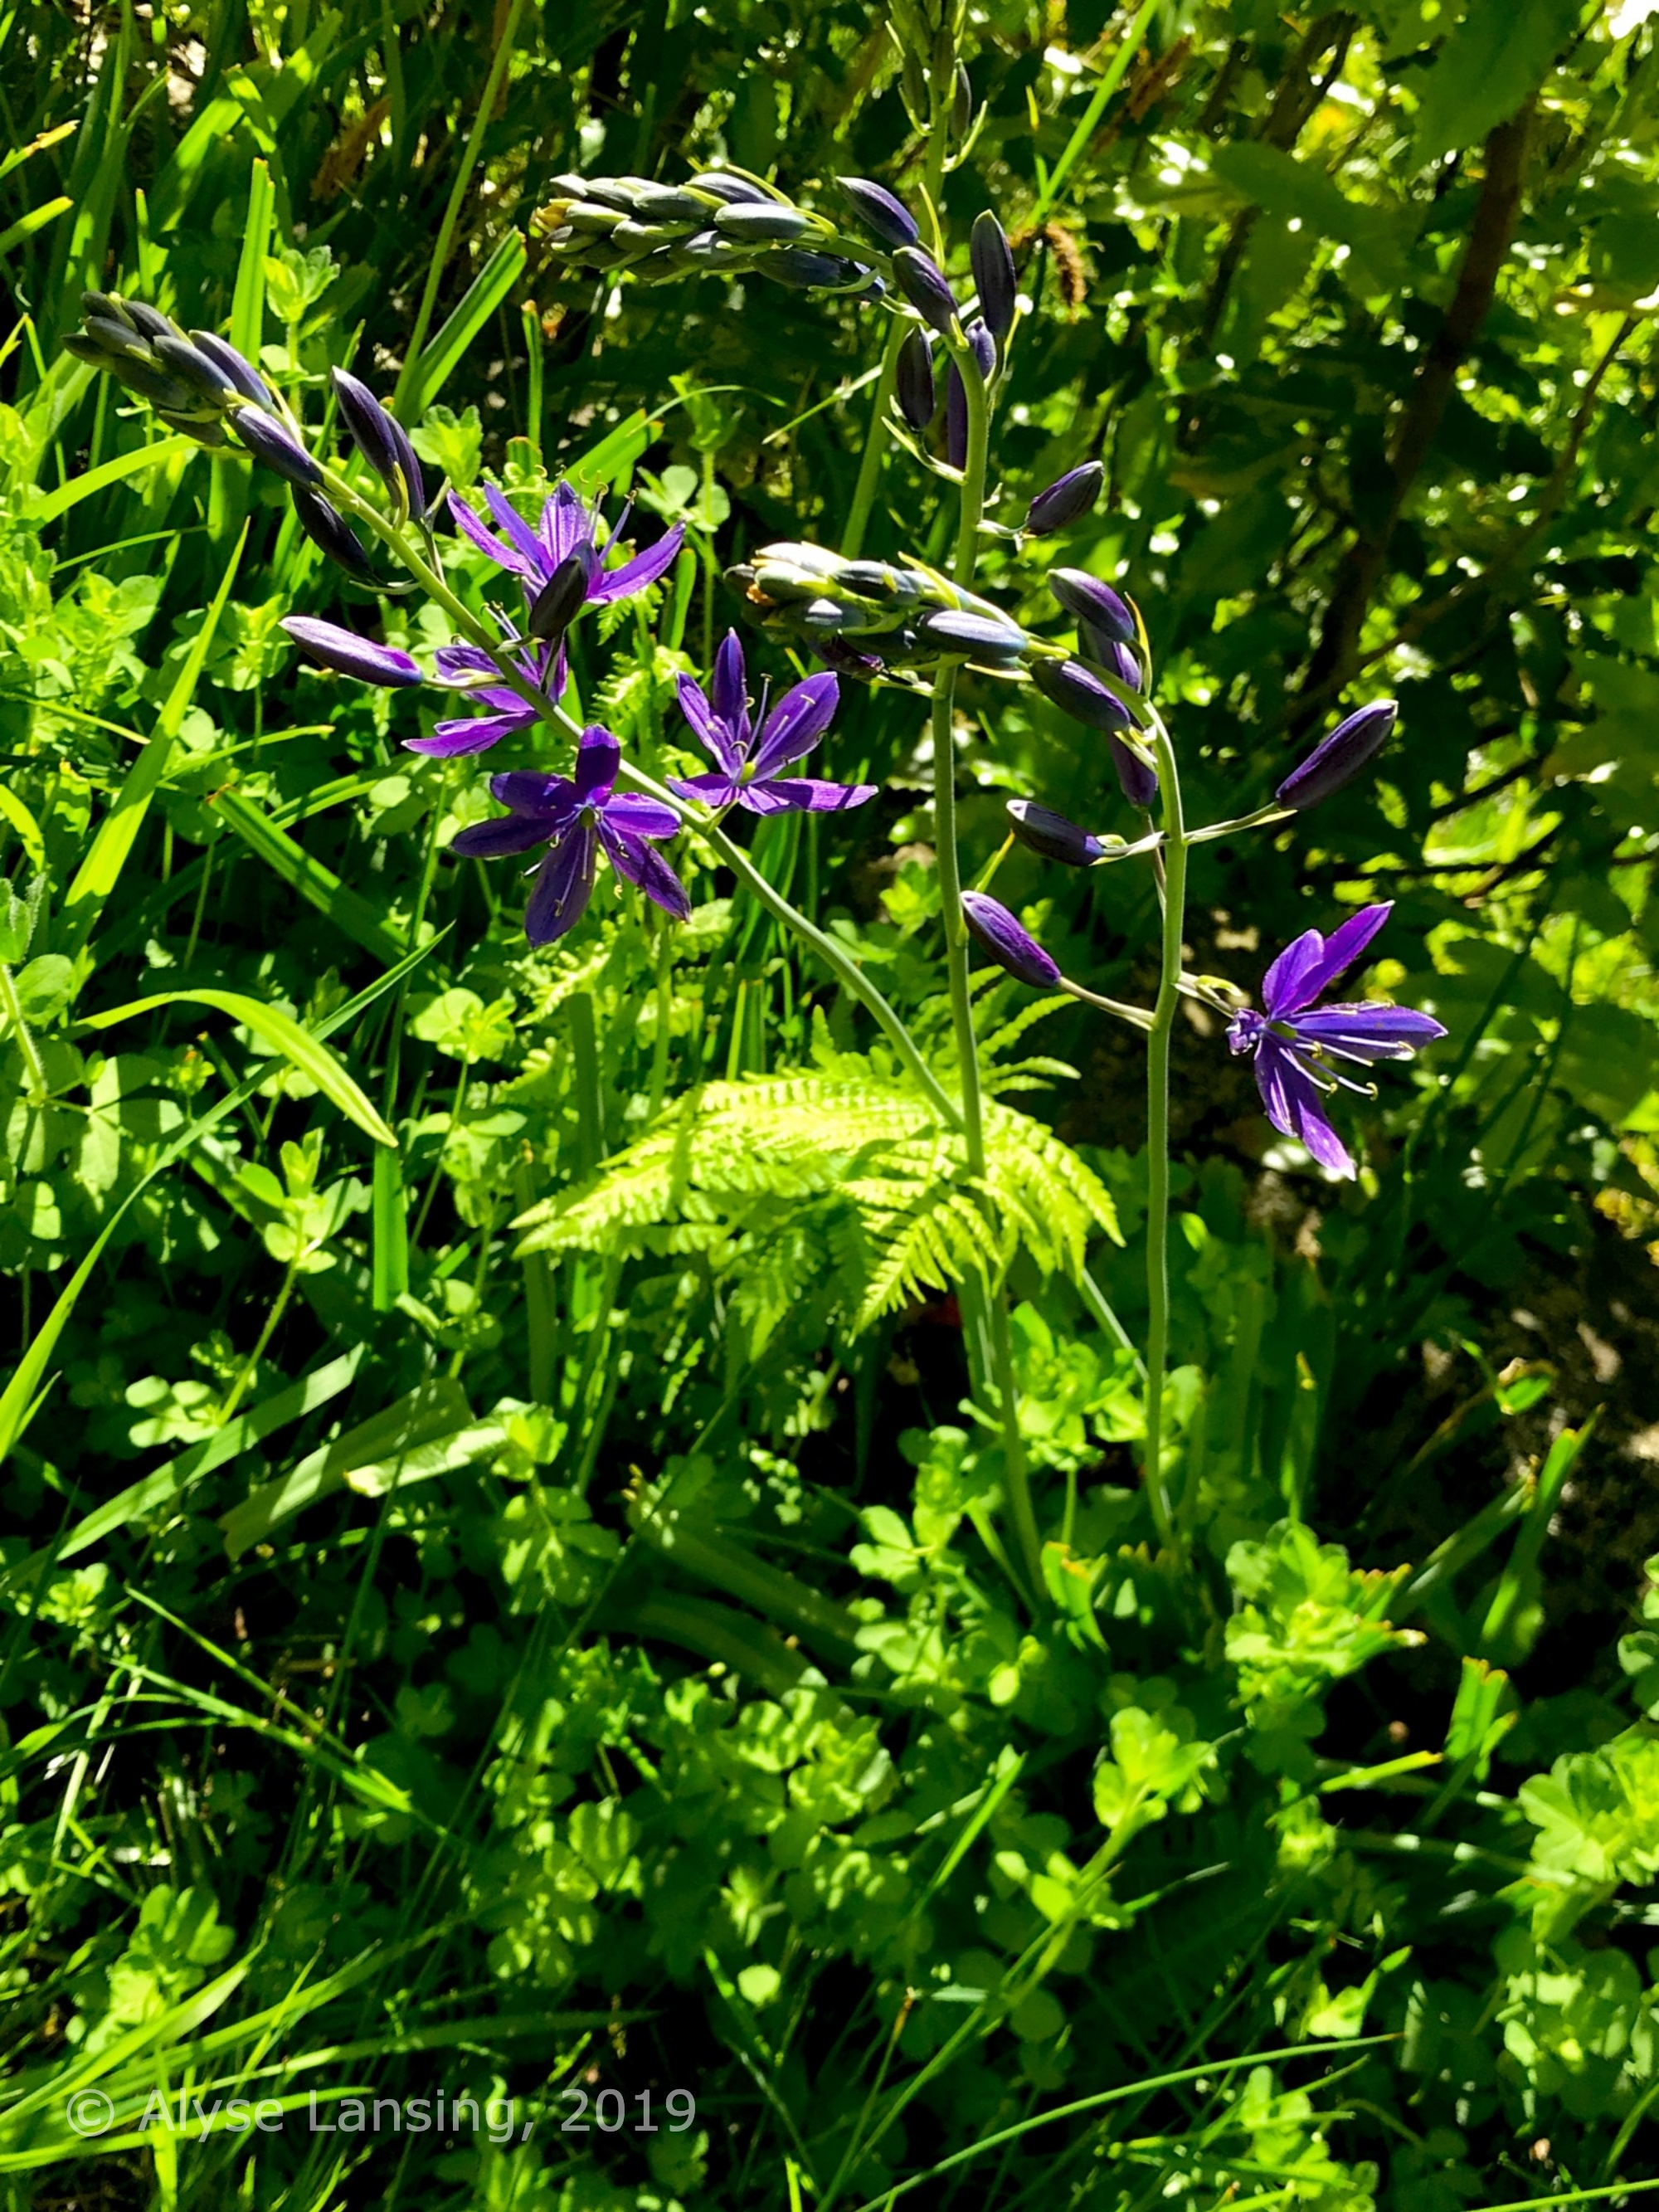 Camas Lily ( Camassia ) in the bioswale